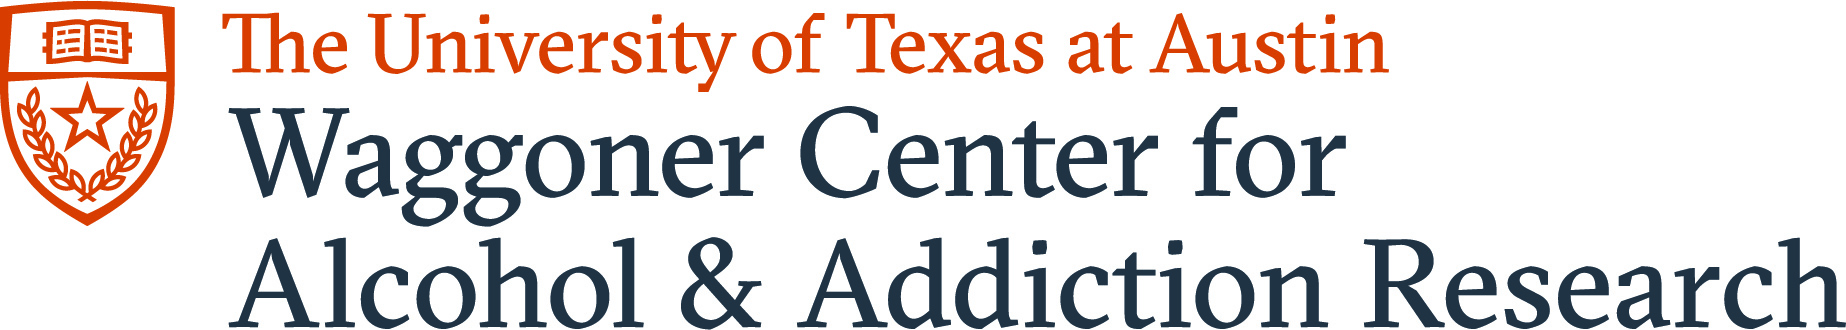 Waggoner Center for Alcohol & Addiction Research logo